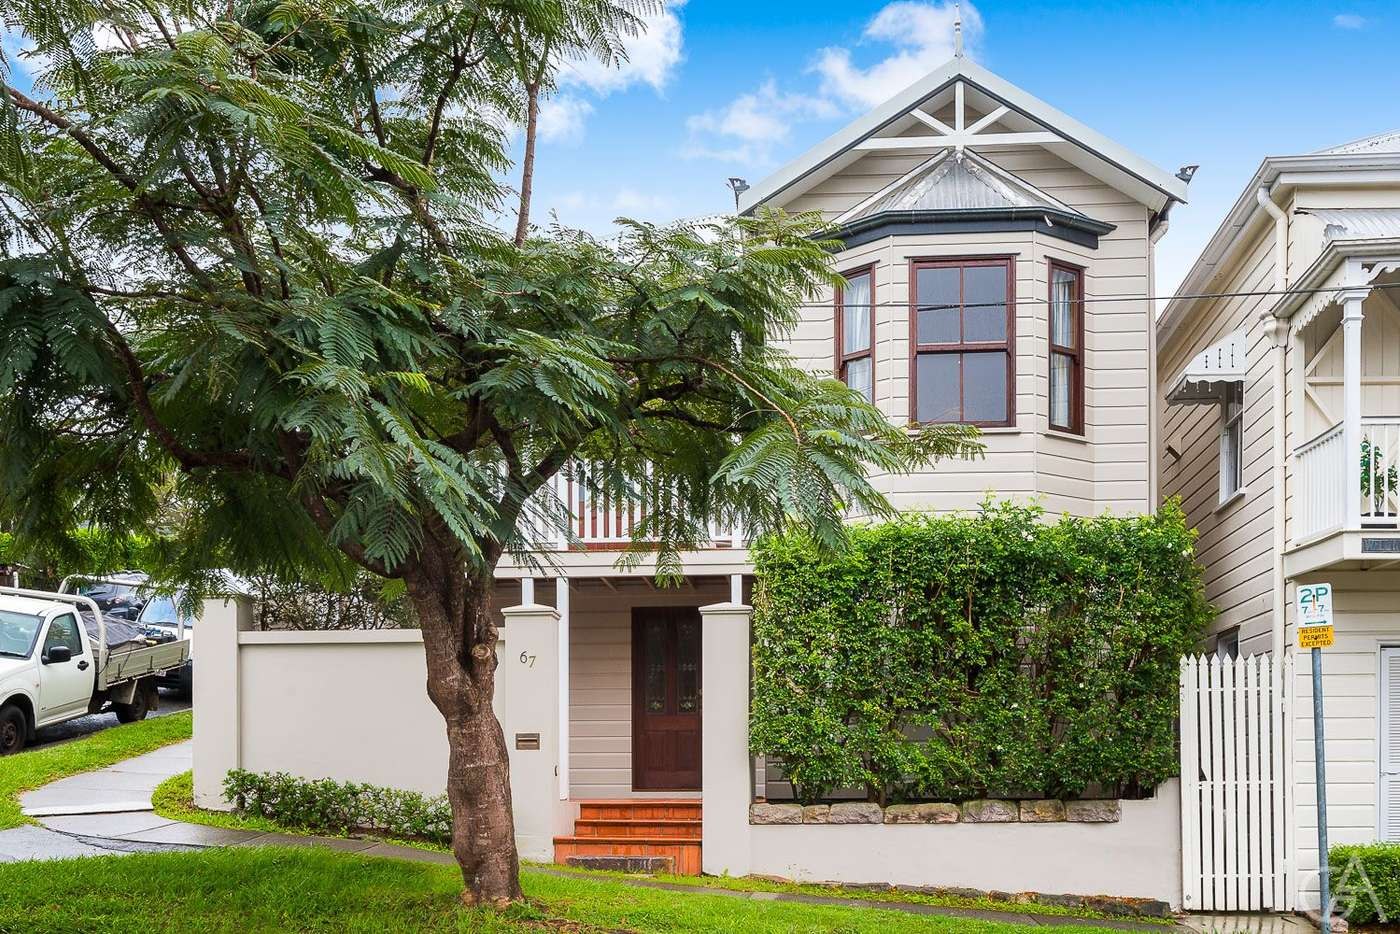 Main view of Homely house listing, 67 Wellington Street, Petrie Terrace QLD 4000